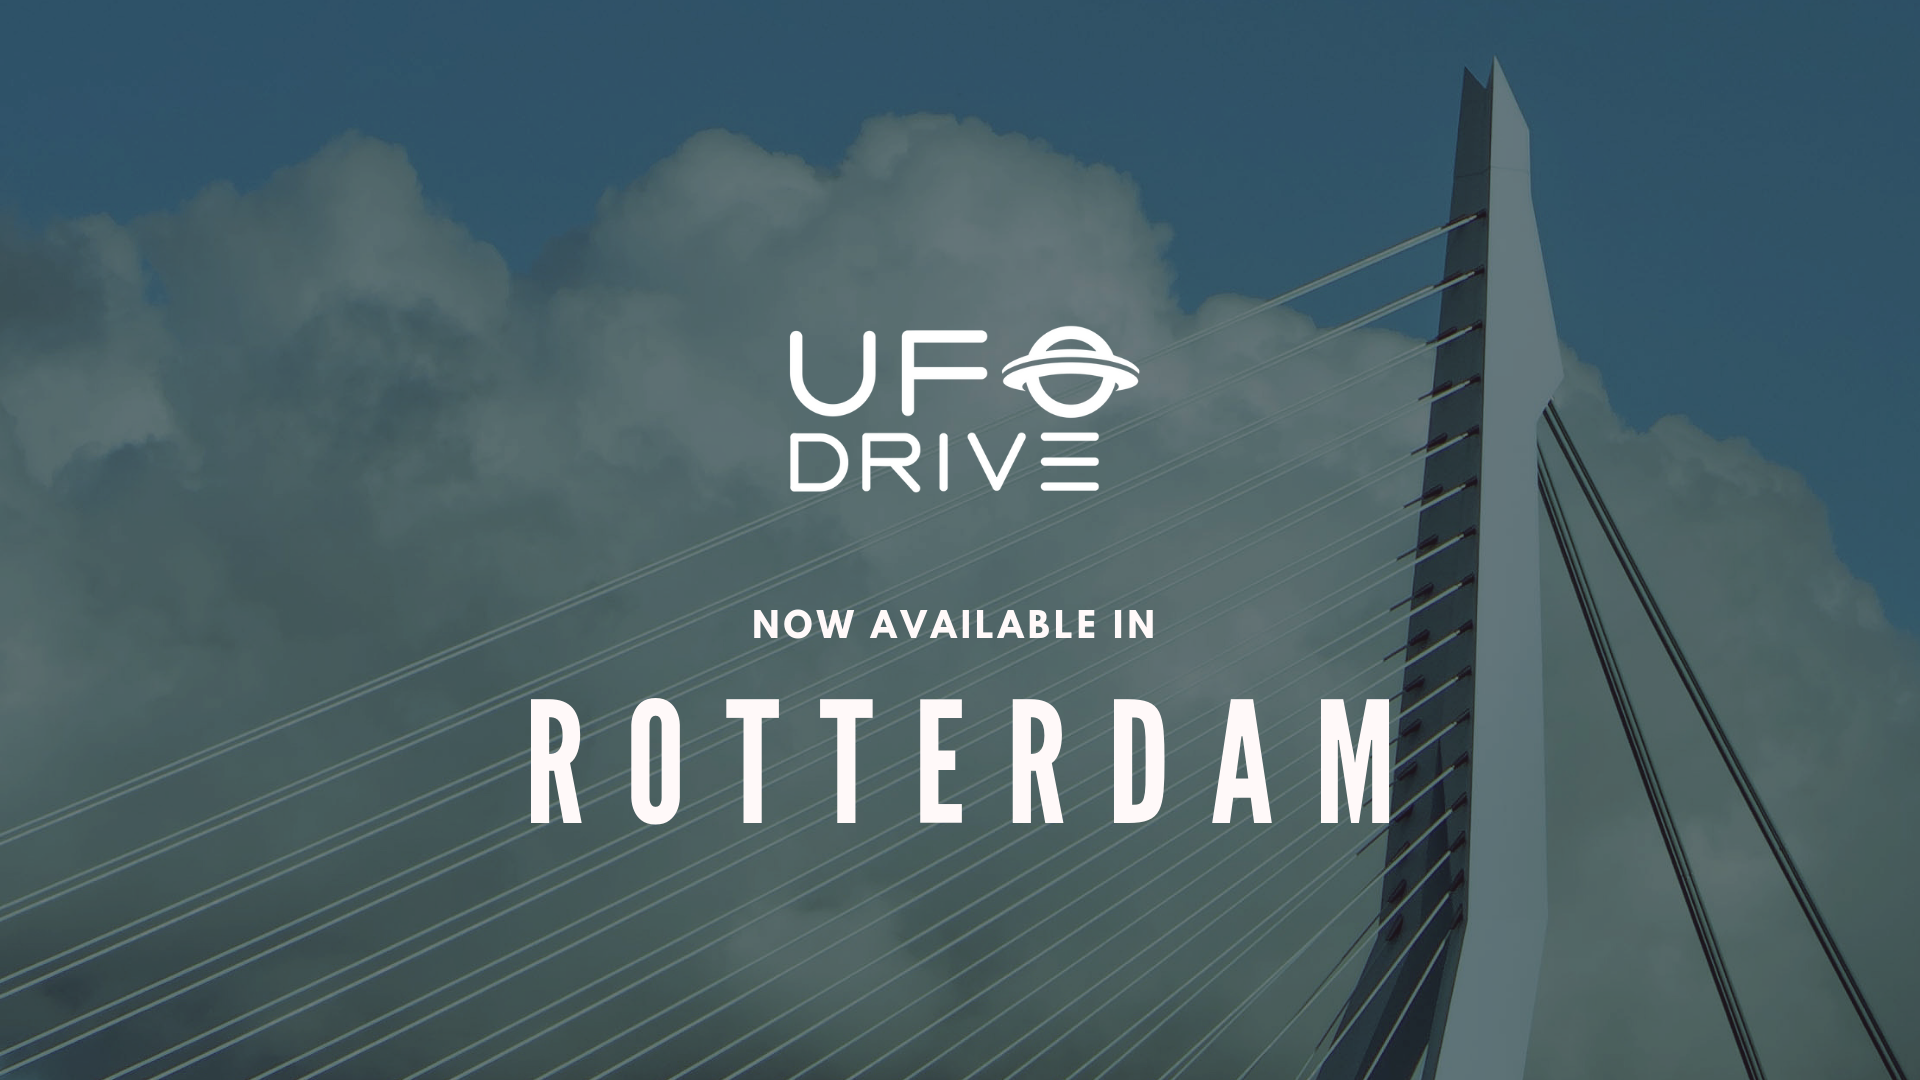 UFODRIVE officially launches in Rotterdam